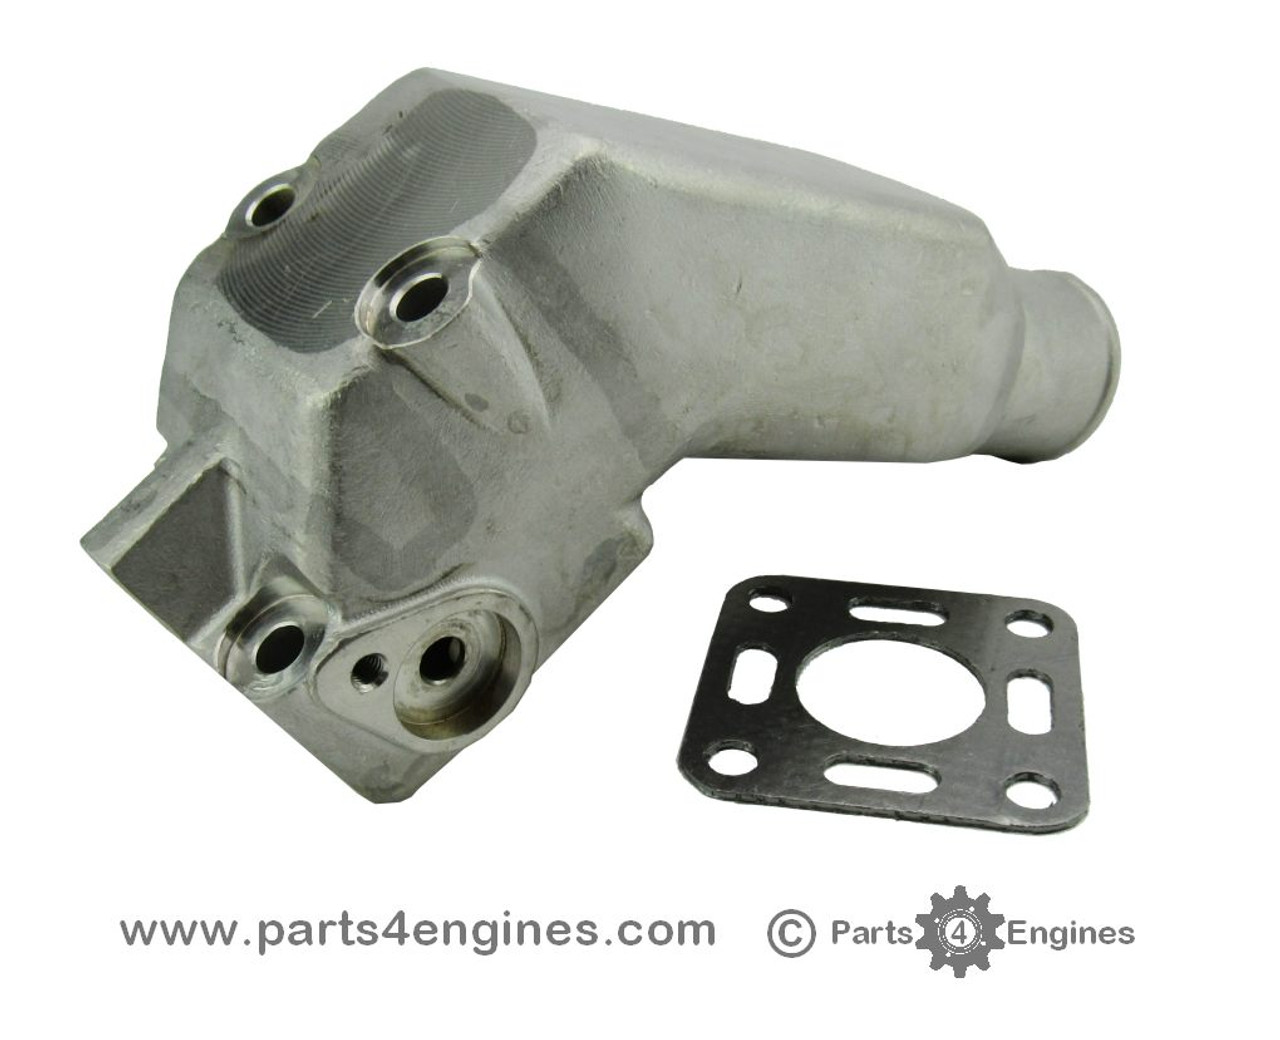 volvo penta 2003 stainless steel exhaust outlet elbow